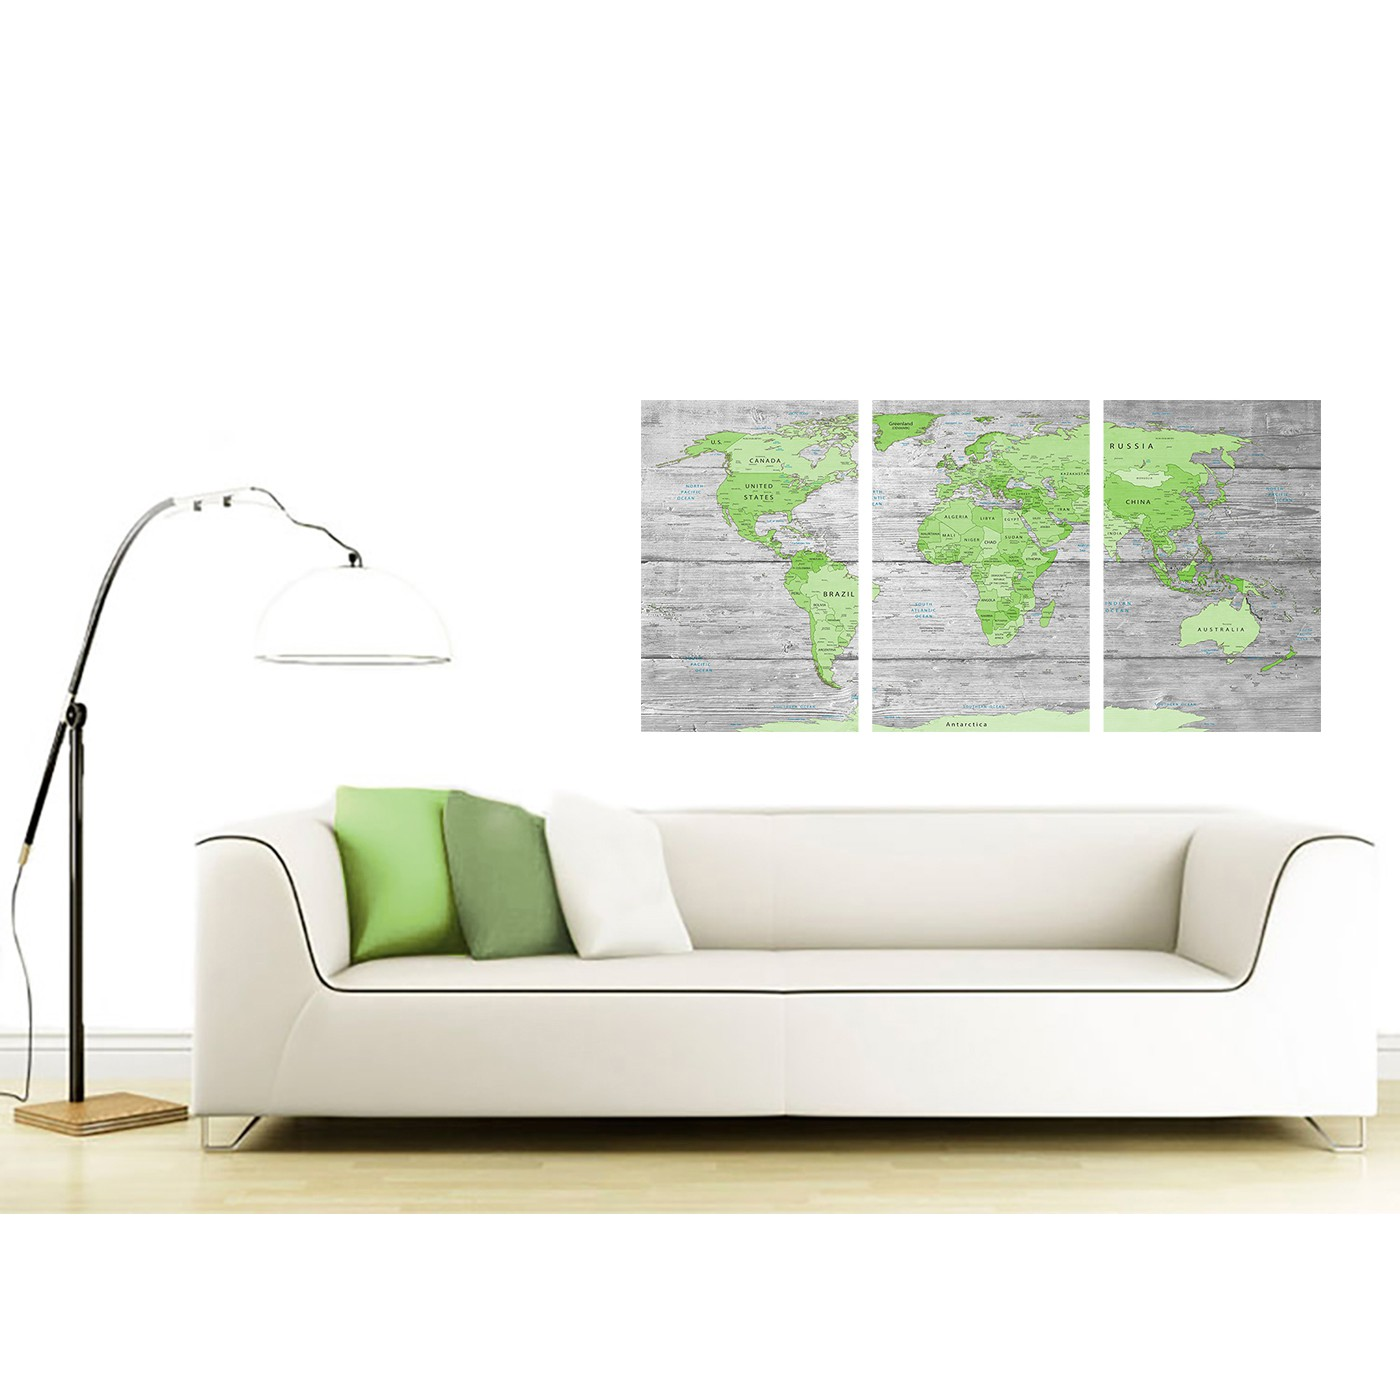 Large lime green grey world map atlas canvas wall art print multi display gallery item 3 contemporary green grey large lime green grey world map atlas canvas wall art print maps canvas display gallery item 4 gumiabroncs